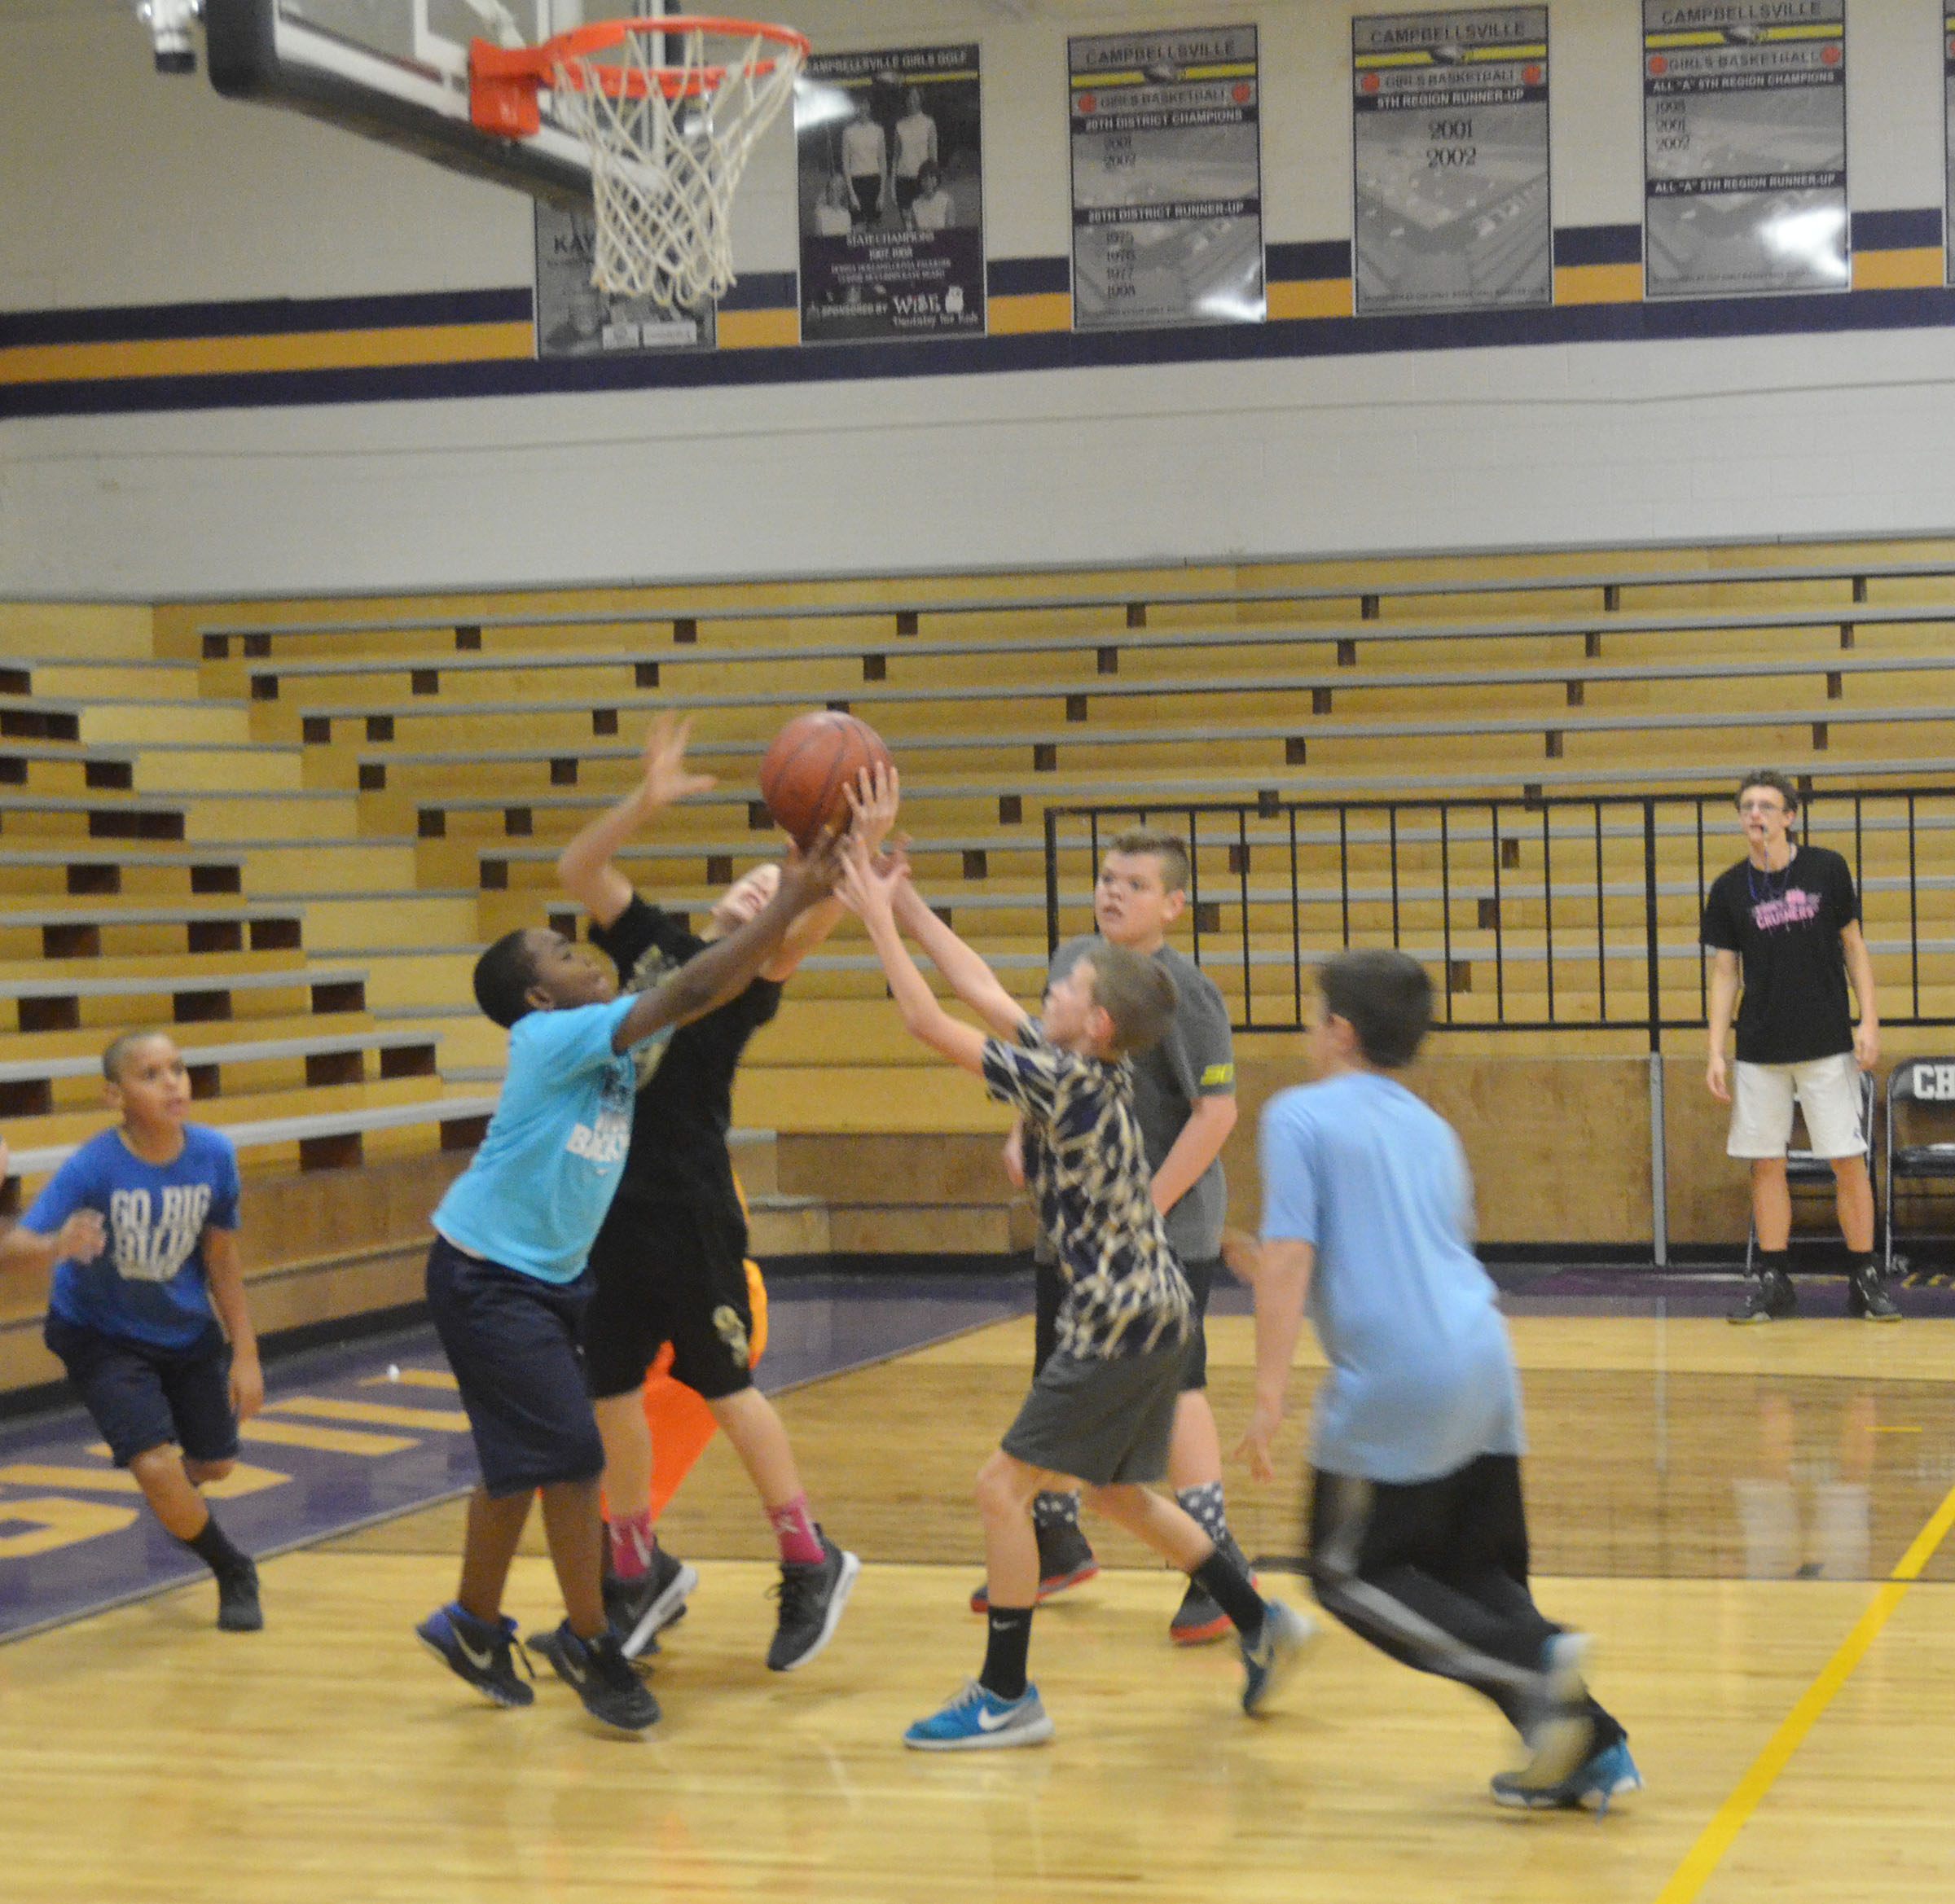 CMS students battle for a rebound.